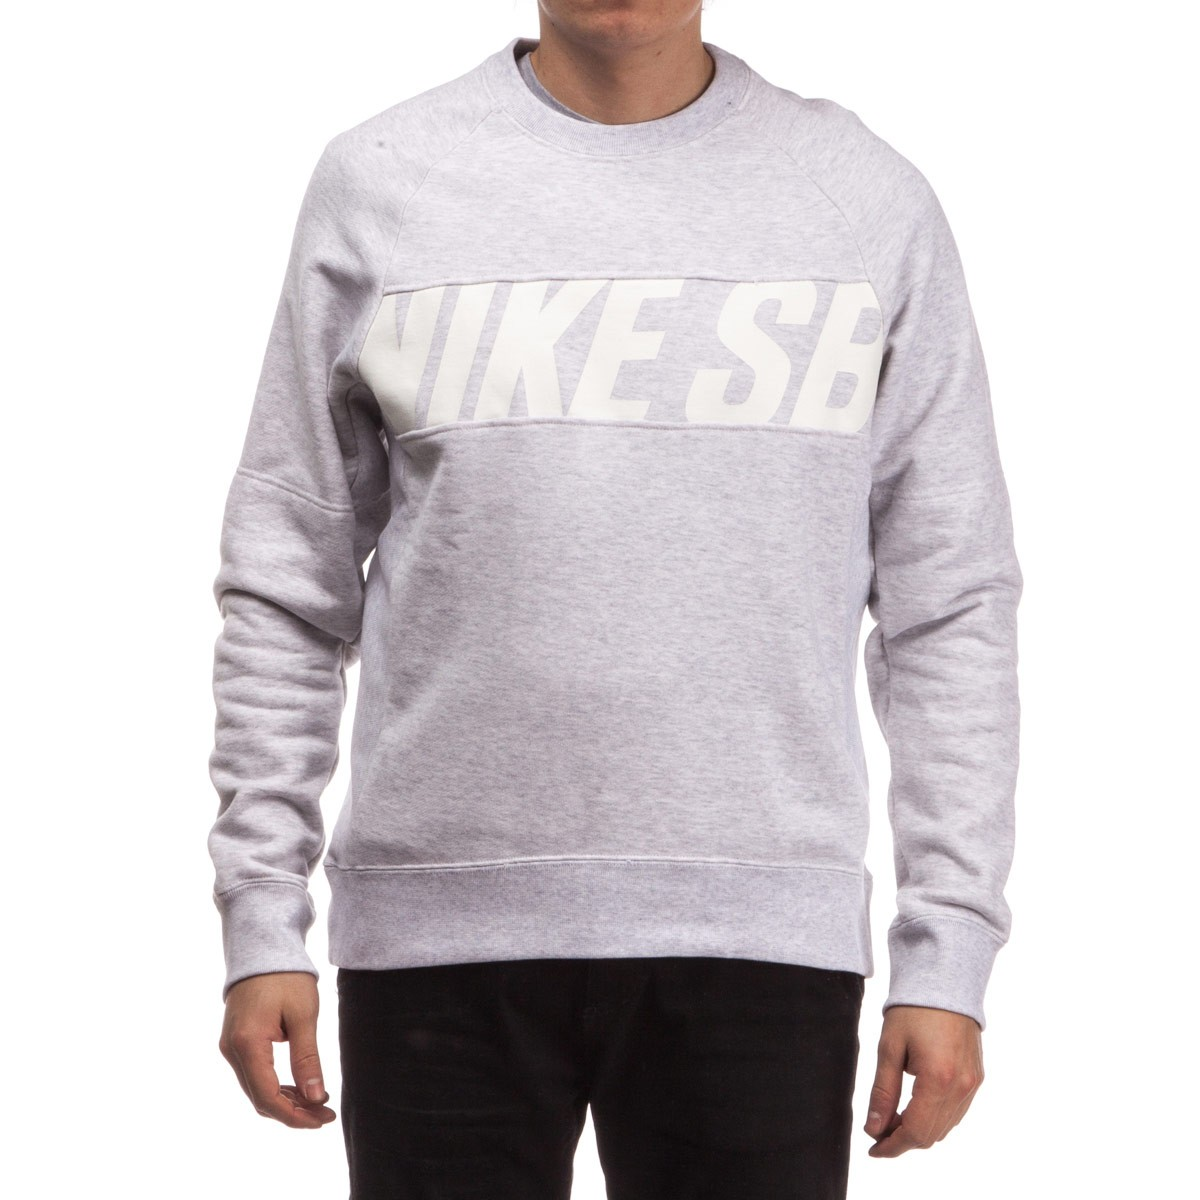 Everett Motion Crew Sweatshirt Sb Birch Heatherwhite Nike v7Uwx7